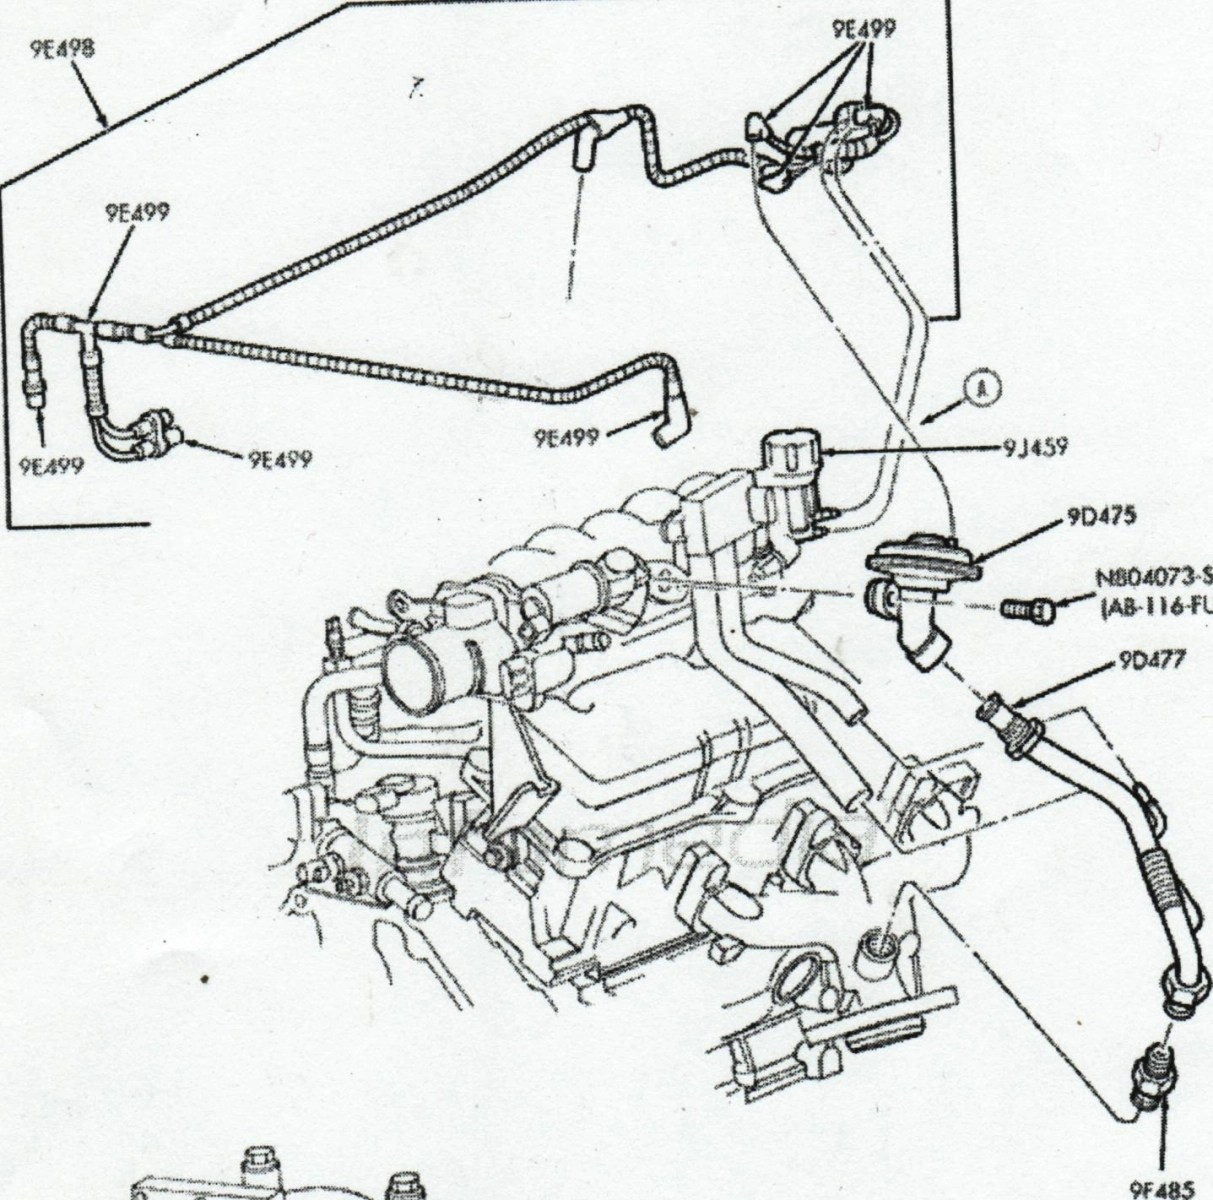 02 Ford Explorer Xlt Fuse Diagram, 02, Free Engine Image